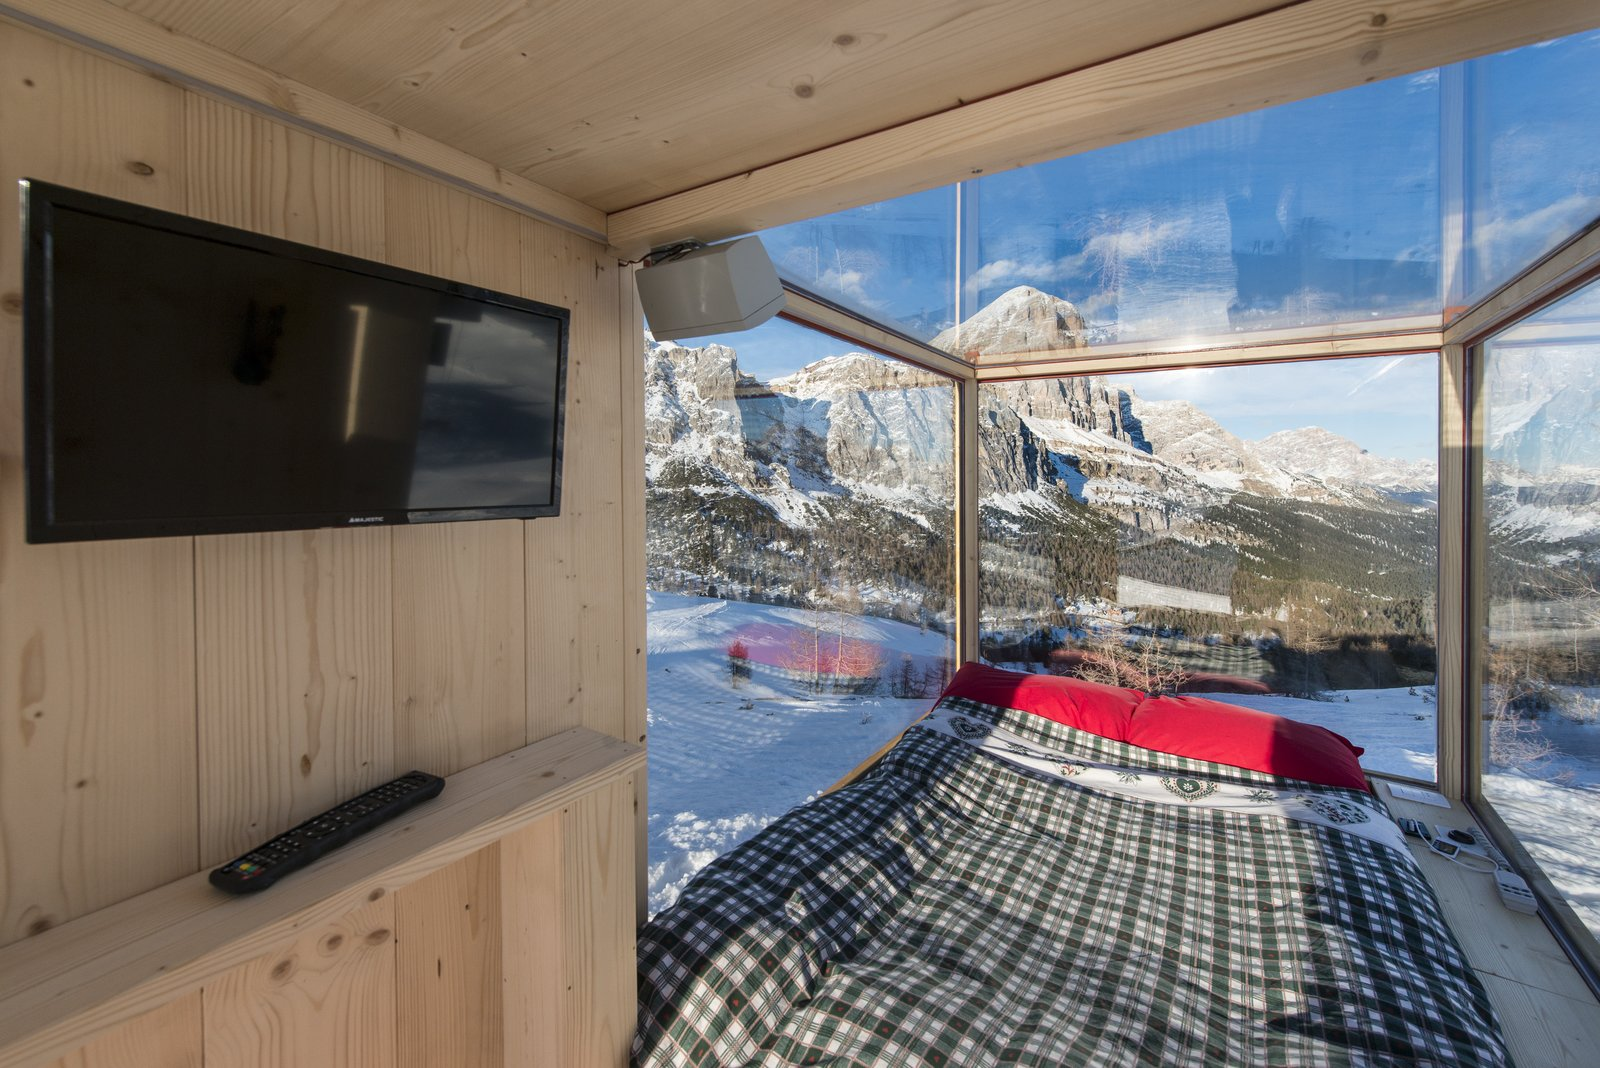 The interior is climate-controlled and ideal for star watching.  Modern Winter Retreats from One Stunning Panorama, 6,742 Feet High Up in the Alps